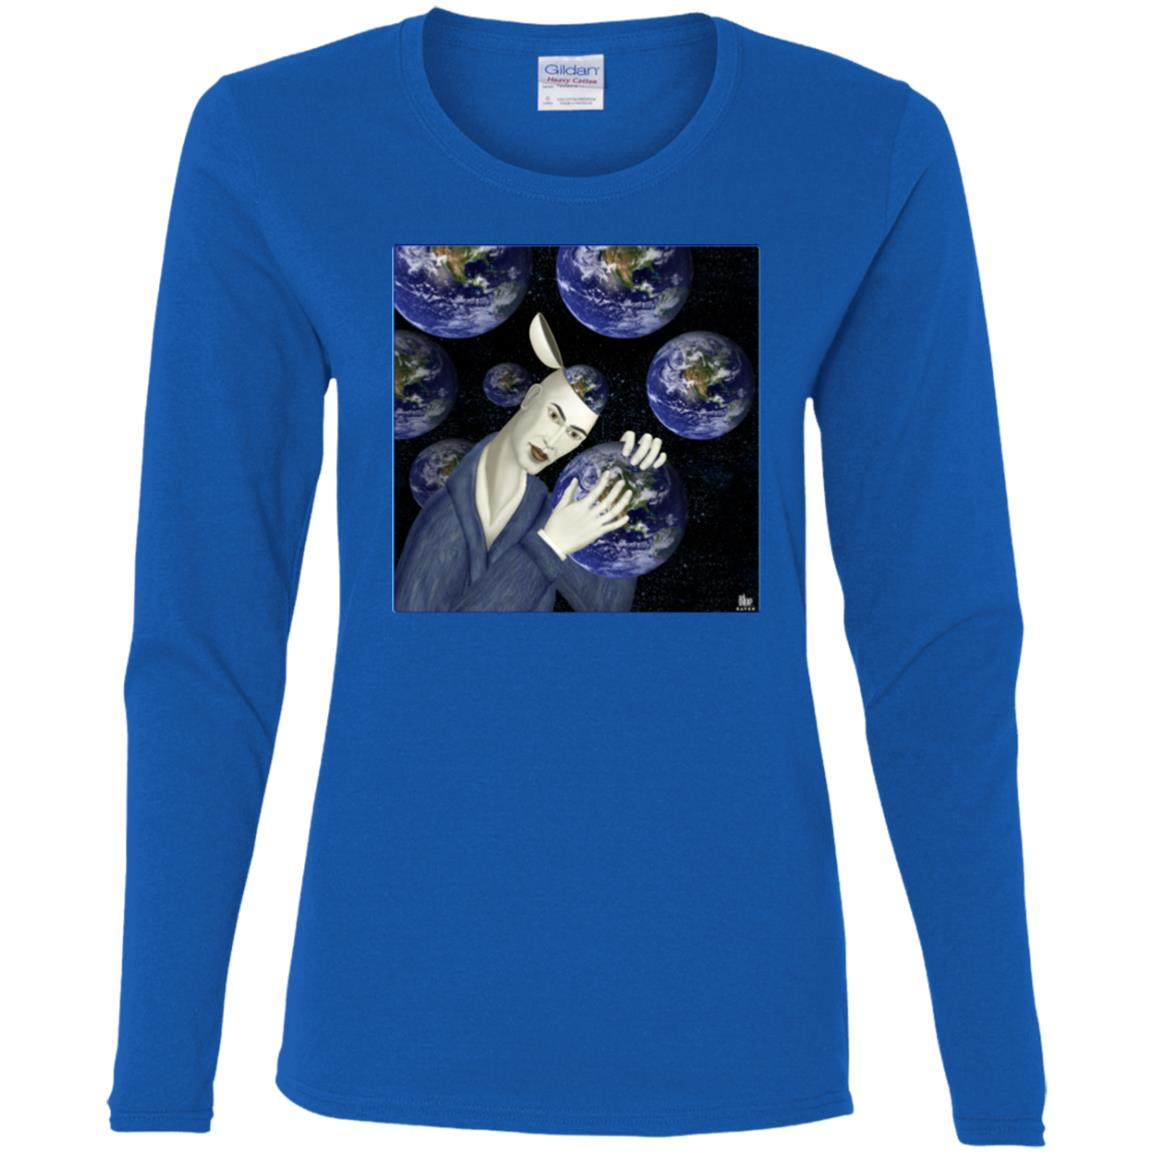 Wonderful World - Women's Long Sleeve Tee